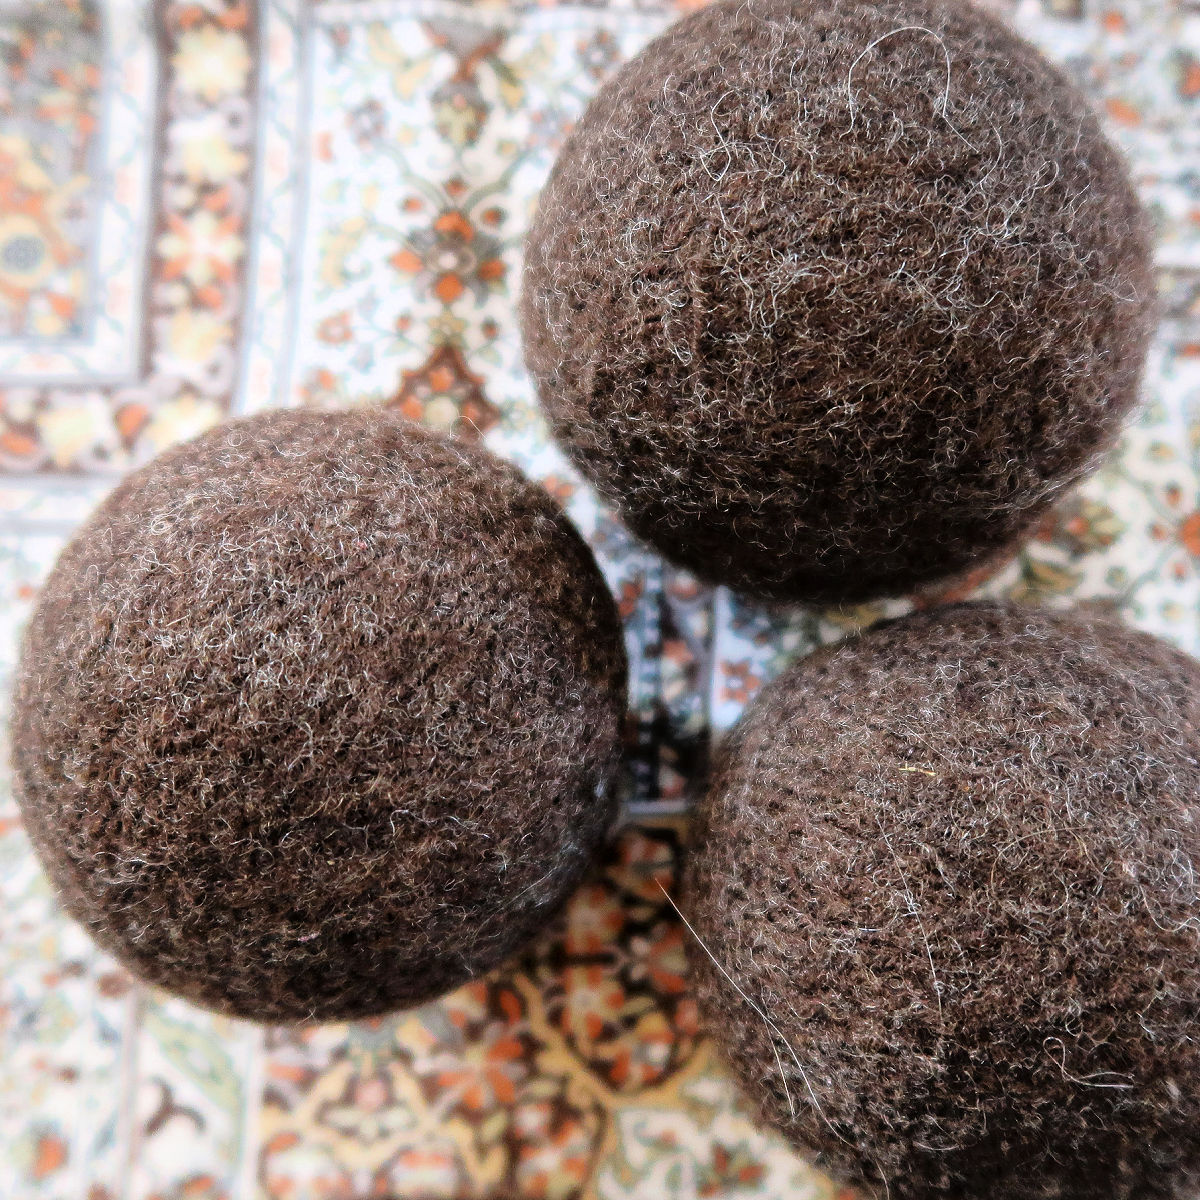 3 wool dryer balls on a patterned tablecloth